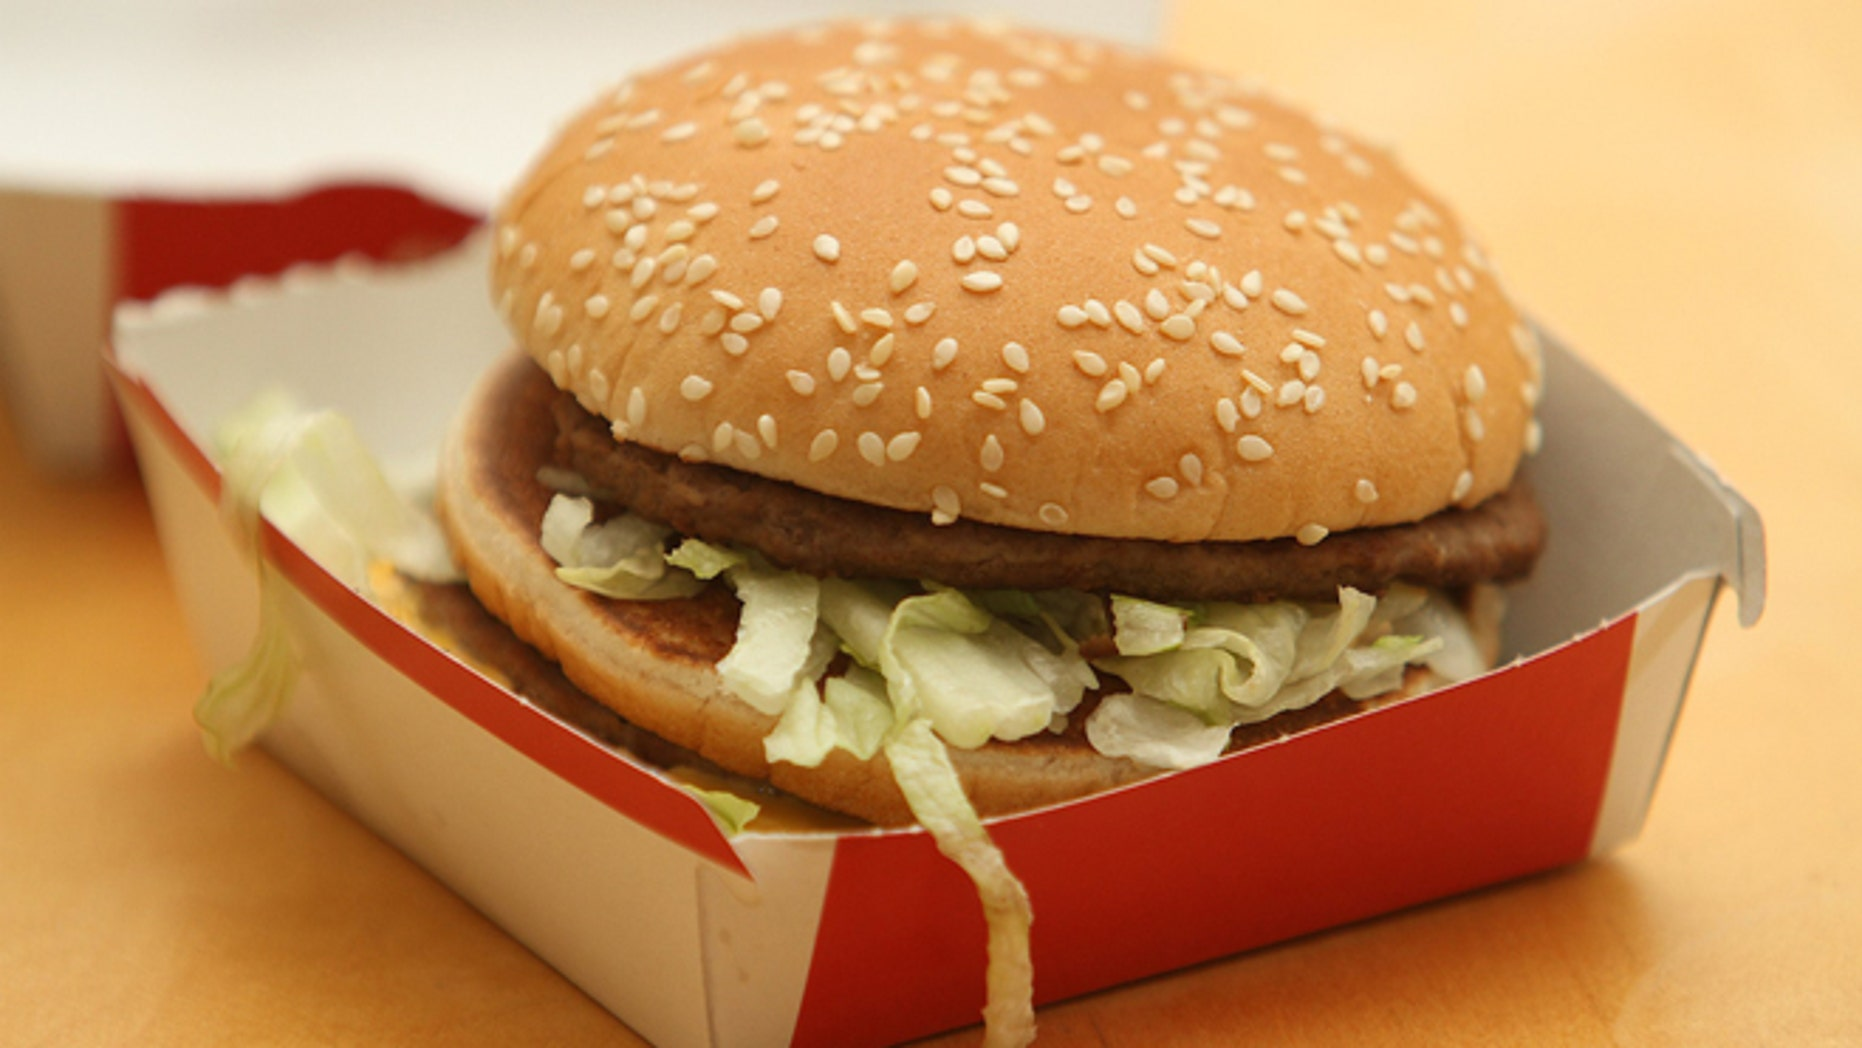 A McDonald's Big Mac burger. (Photo by Worldwide Features / Barcroft Media / Getty Images)